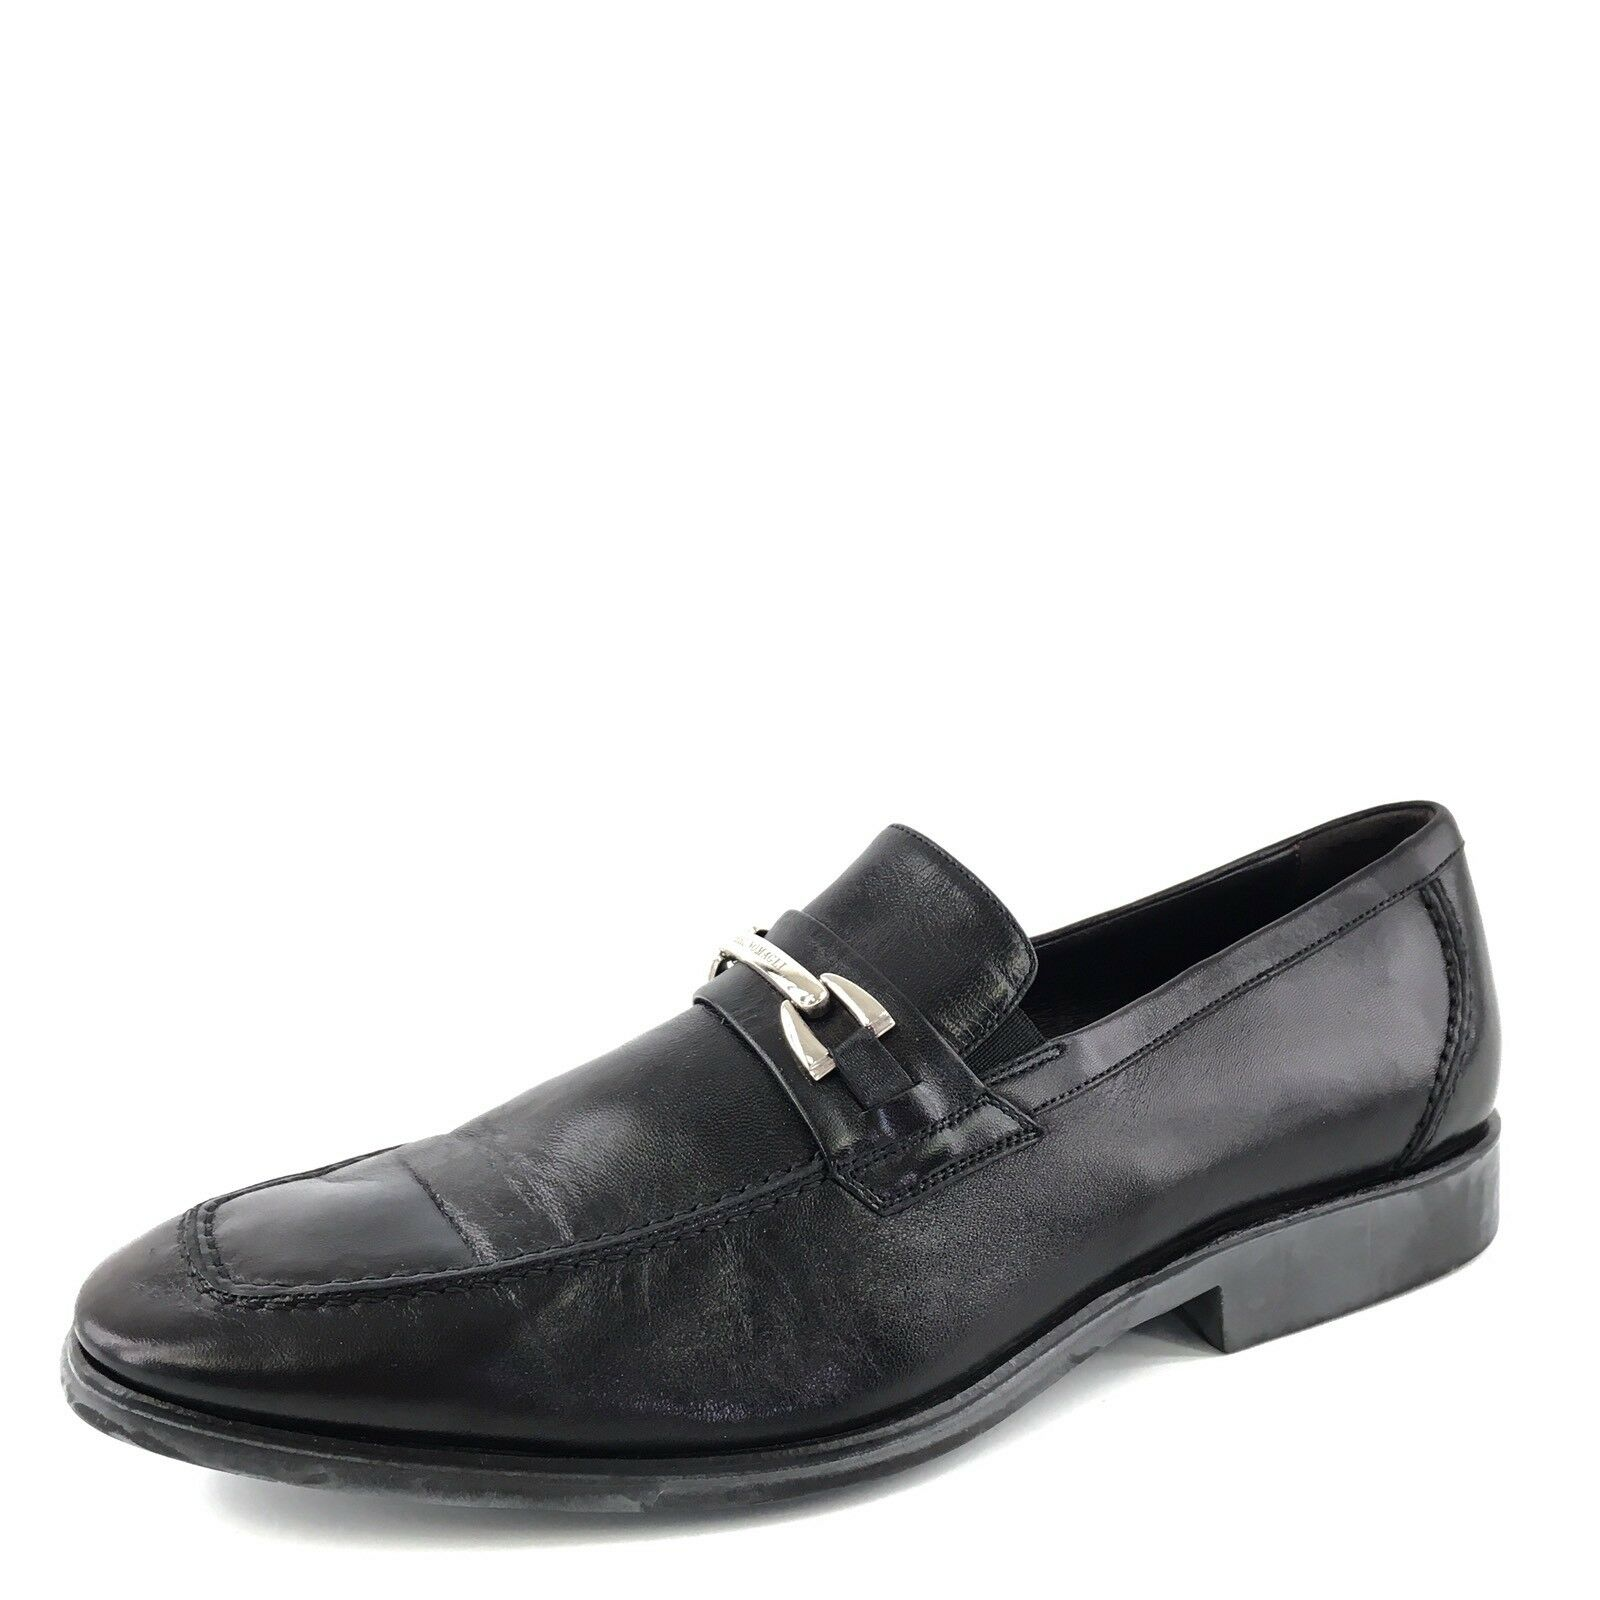 Bruno Magli Black Leather Bit Loafers shoes Men's Size 9.5 M